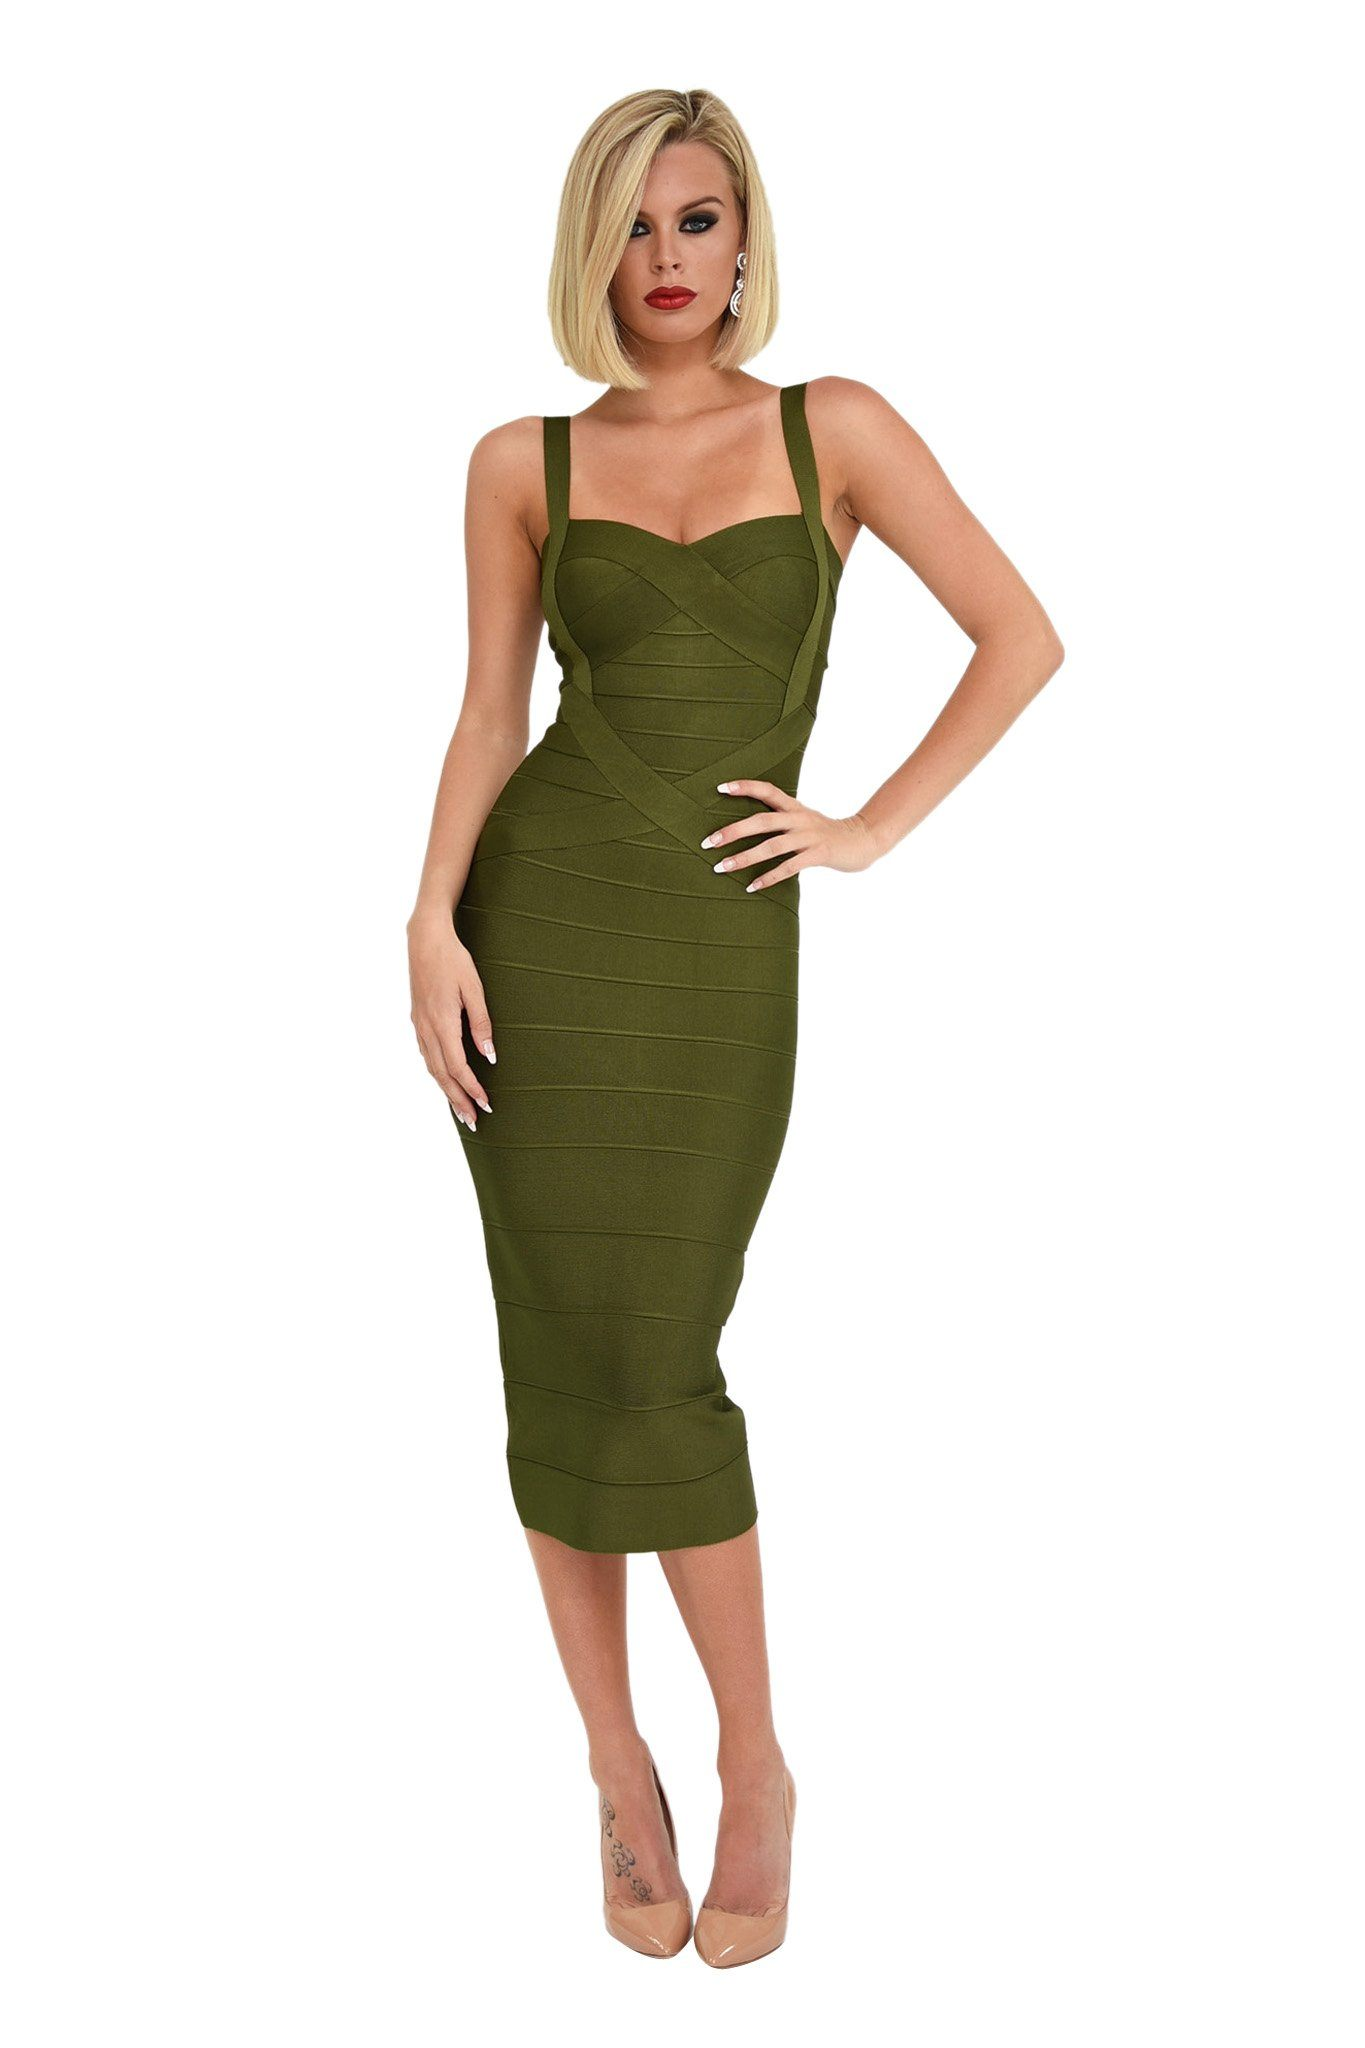 Front of olive khaki green midi below knee bodycon bandage dress shoulder straps sweetheart neckline